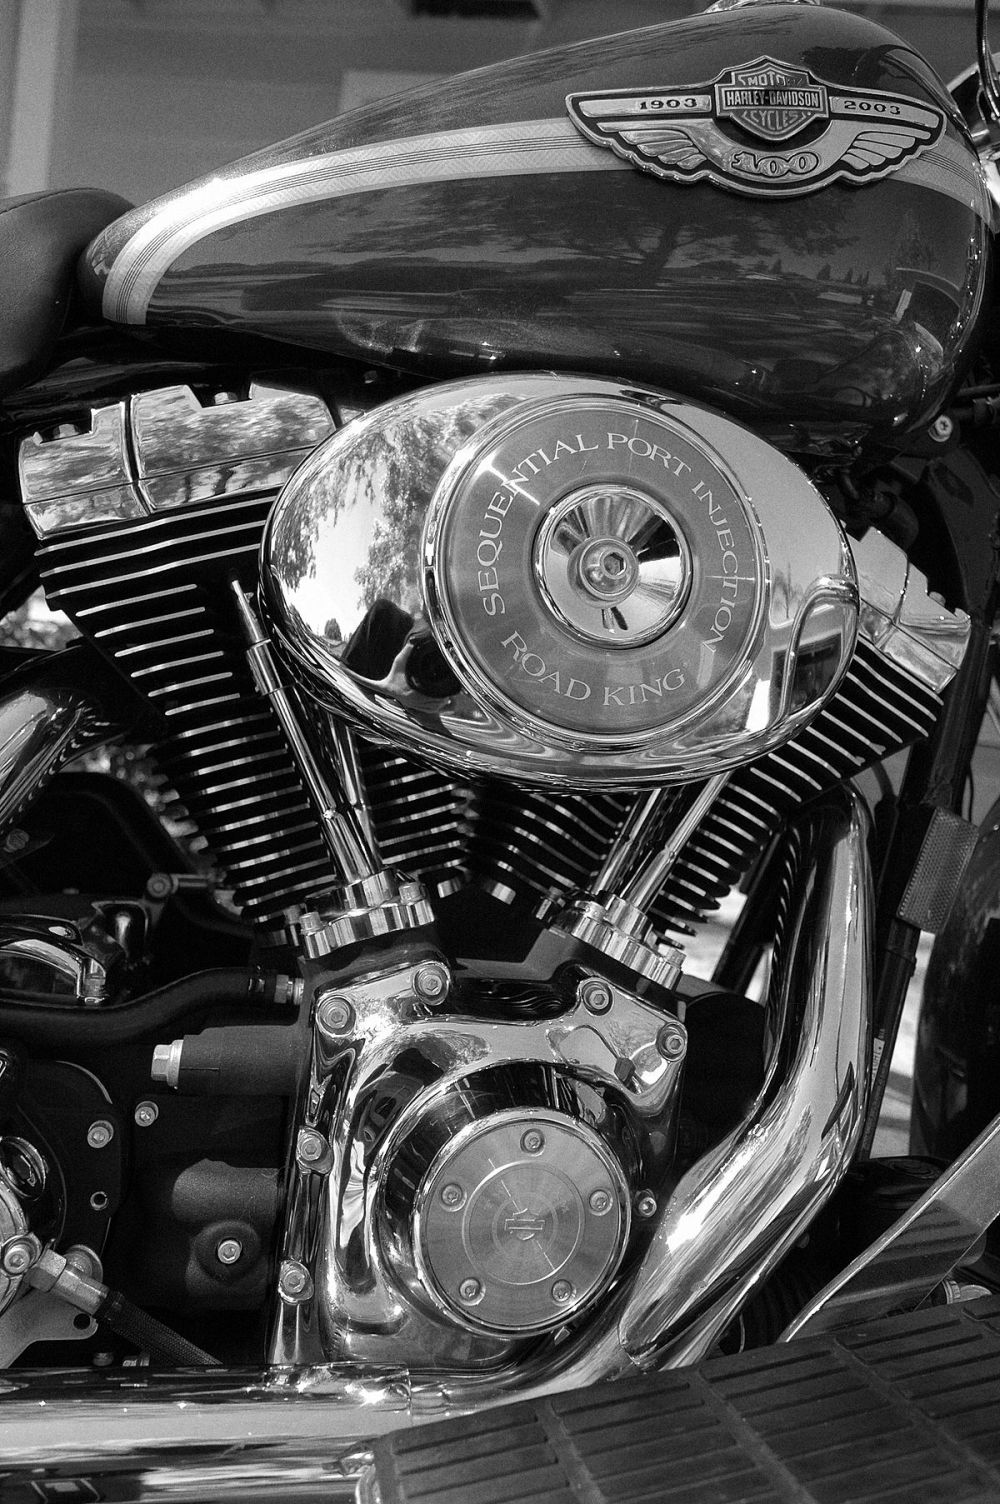 medium resolution of 2014 harley davidson engine diagram